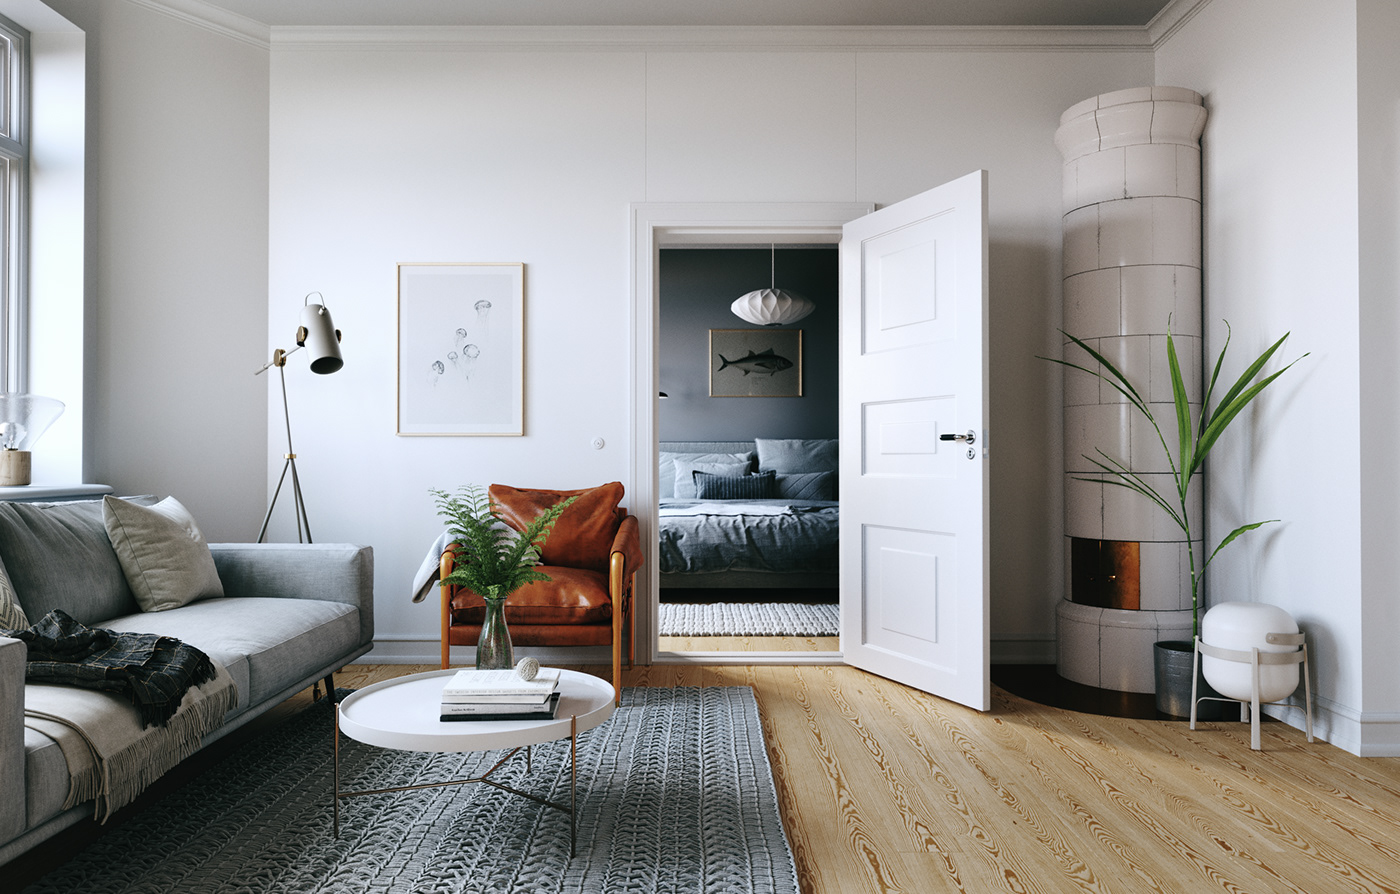 Stockholm apartment on Behance